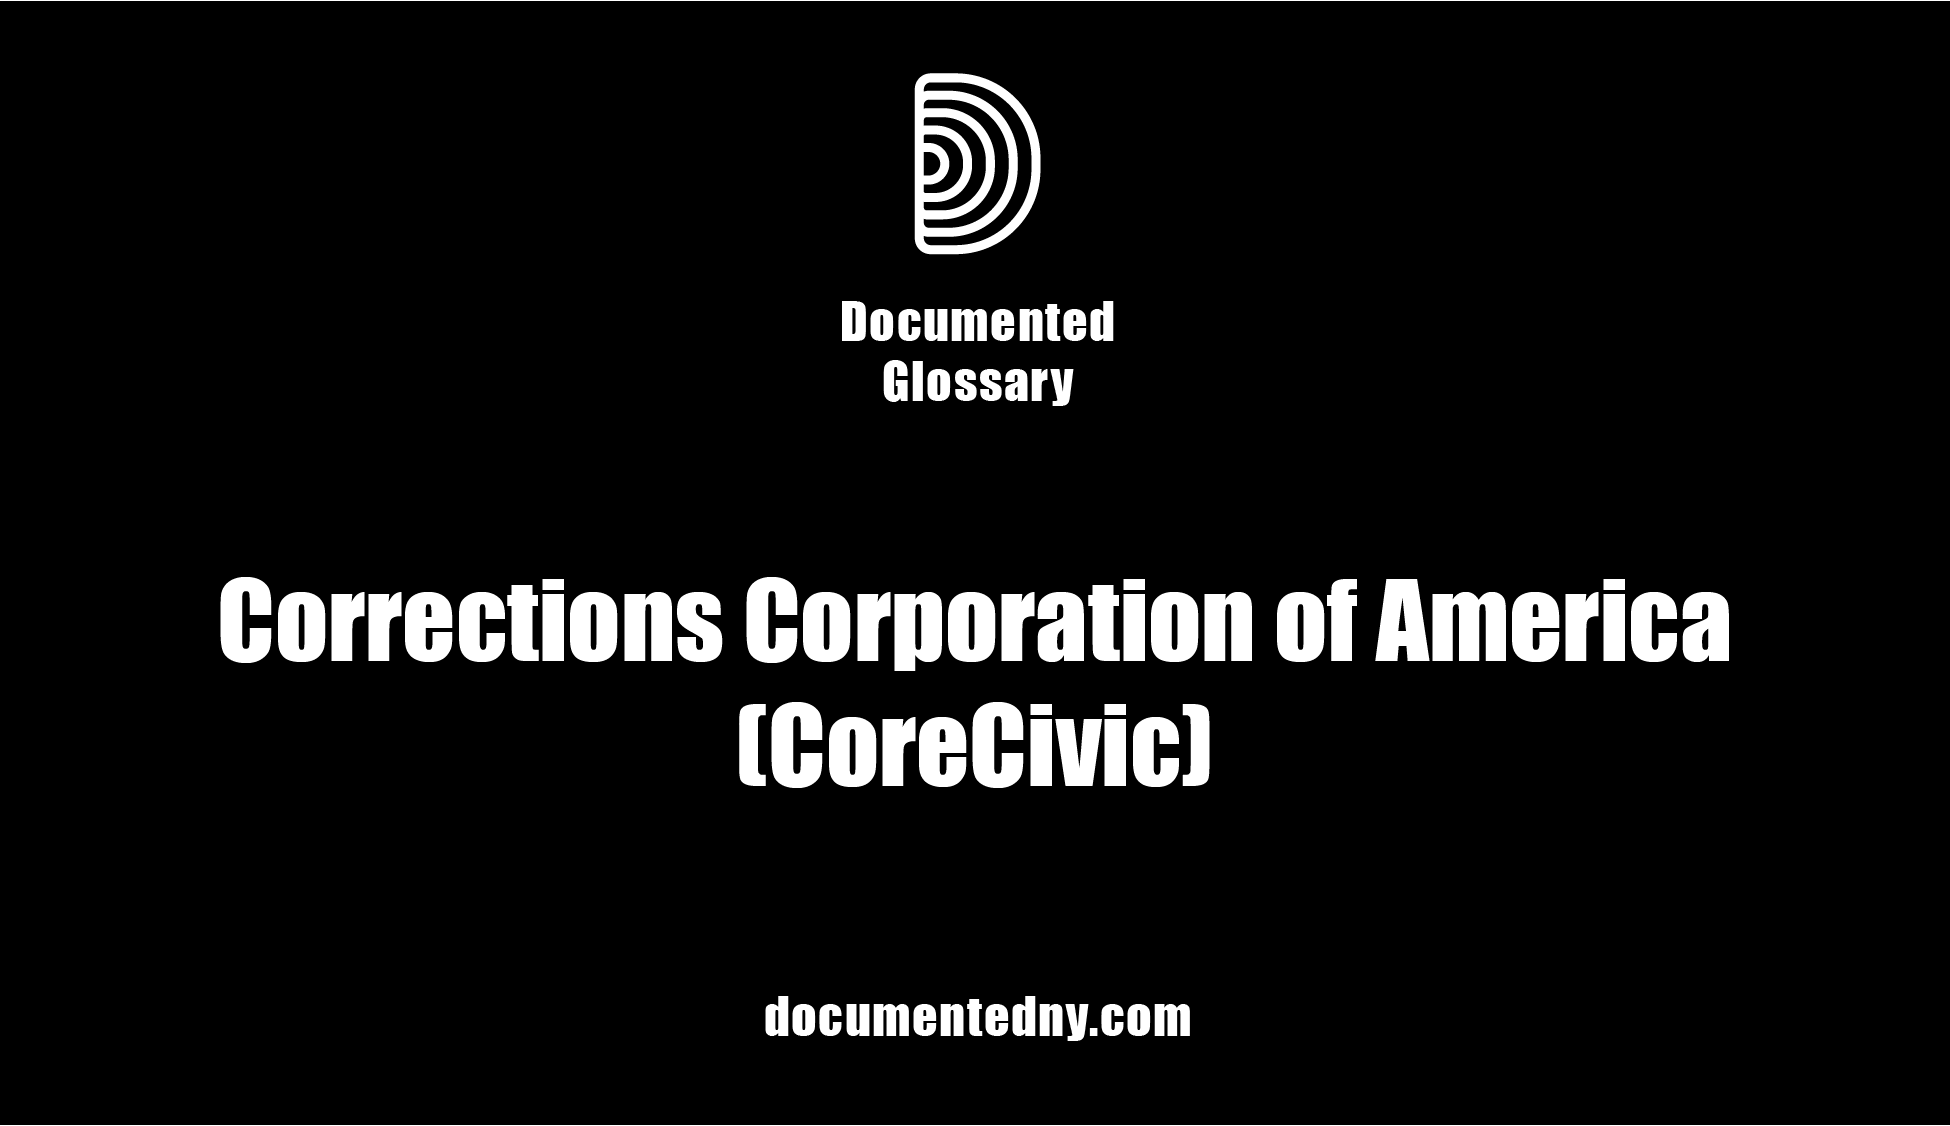 CoreCivic, one of the largest private correctional facilities in the U.S. operates over 70 facilities, 12 of which have contracts with ICE.